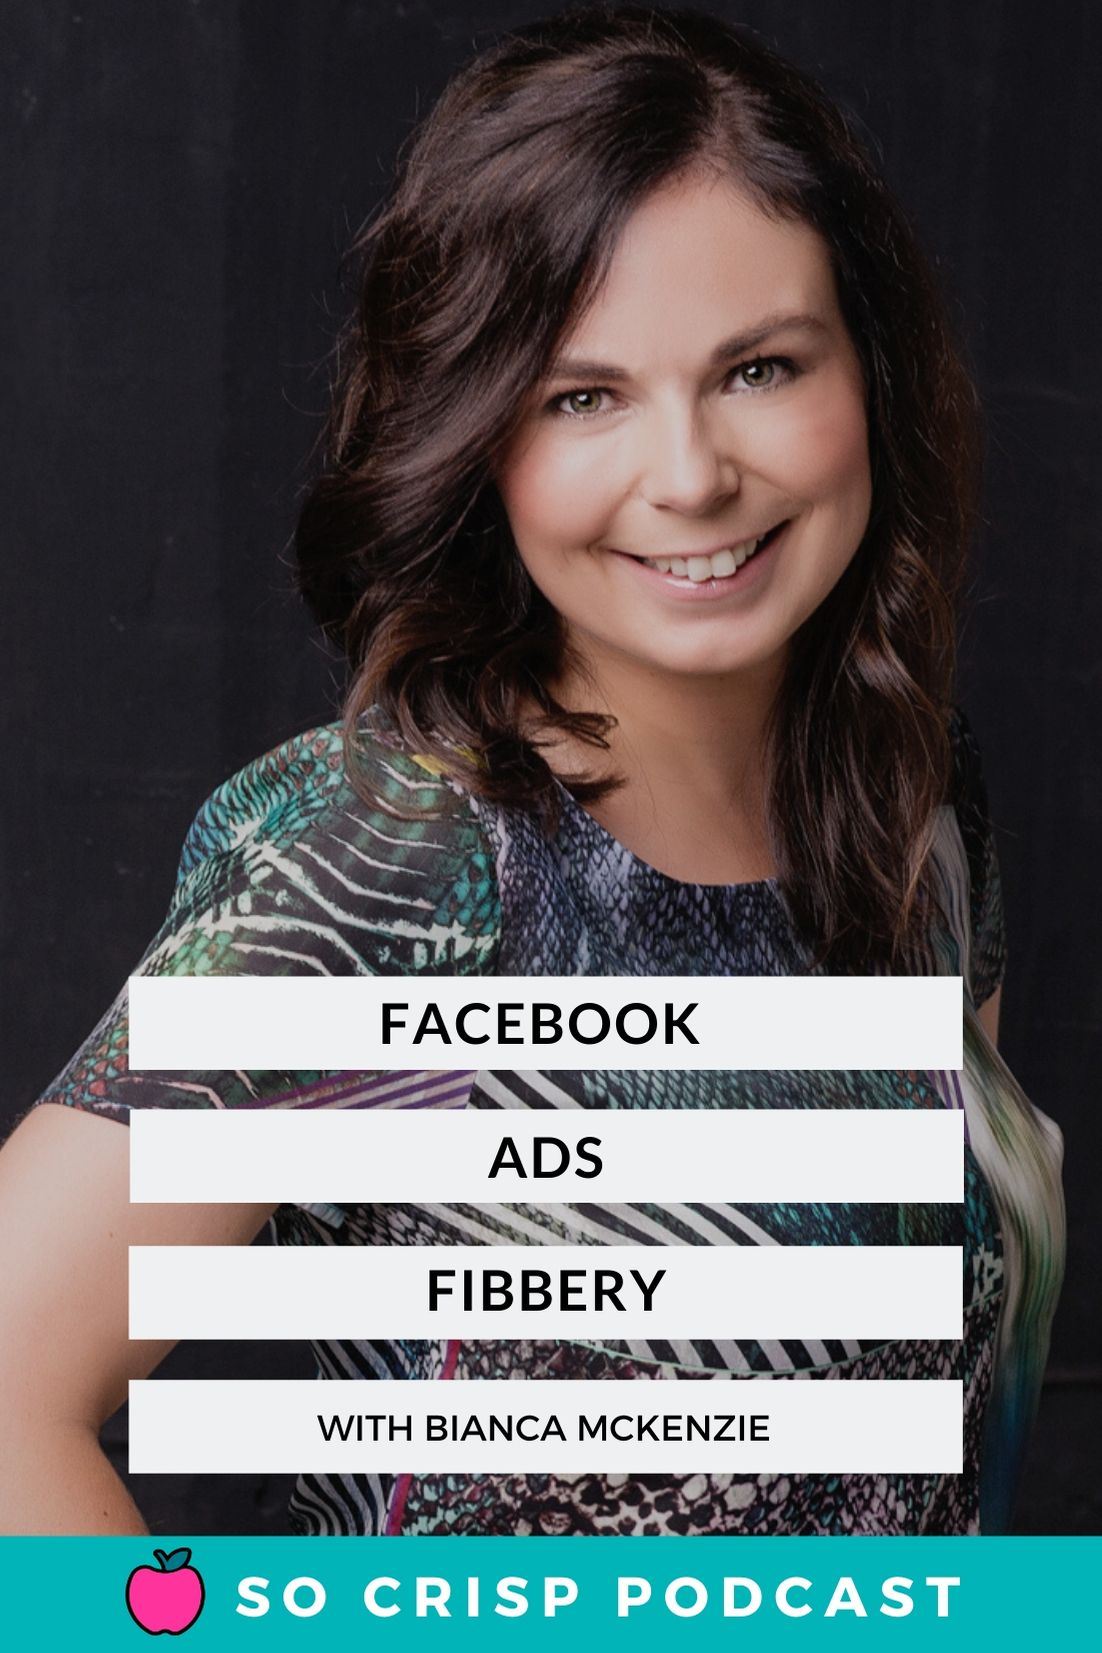 Facebook Ads Fibbery – Bianca McKenzie | So Crisp Podcast